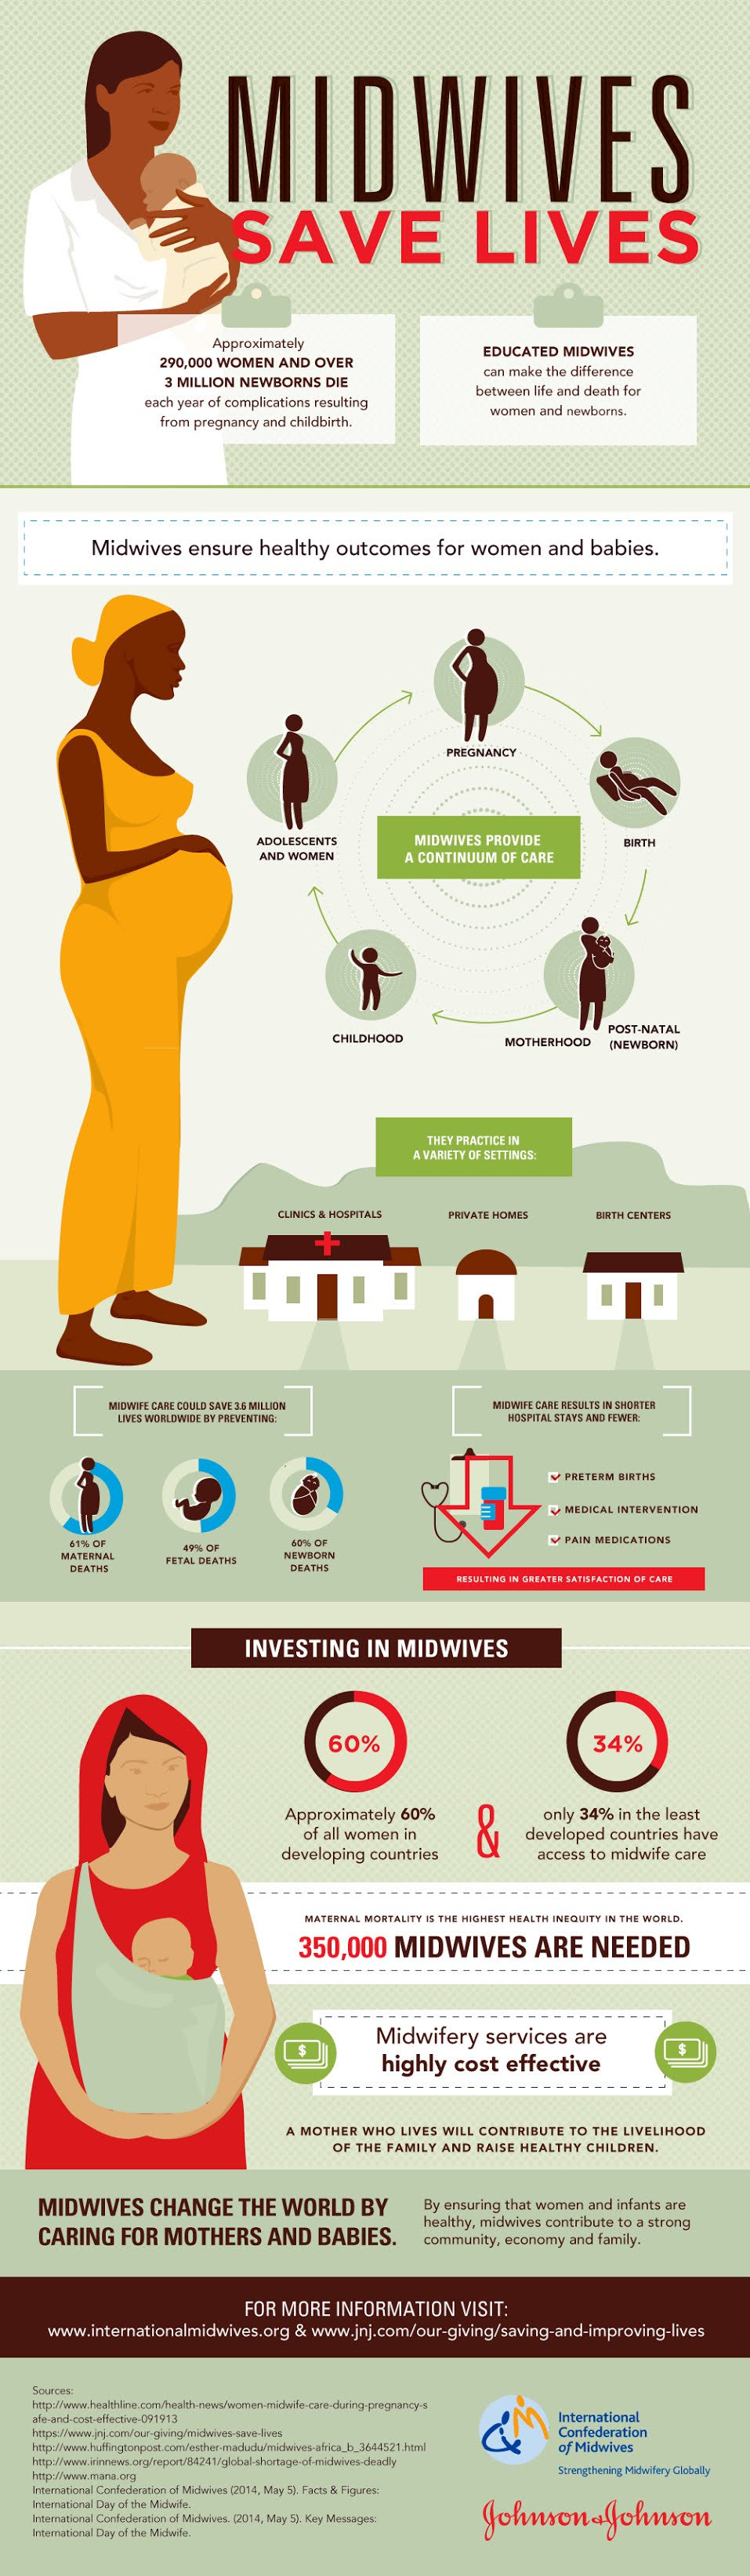 Midwives Save Lives #infographic #Save Lives #infographics #Midwives #Health #Infographic